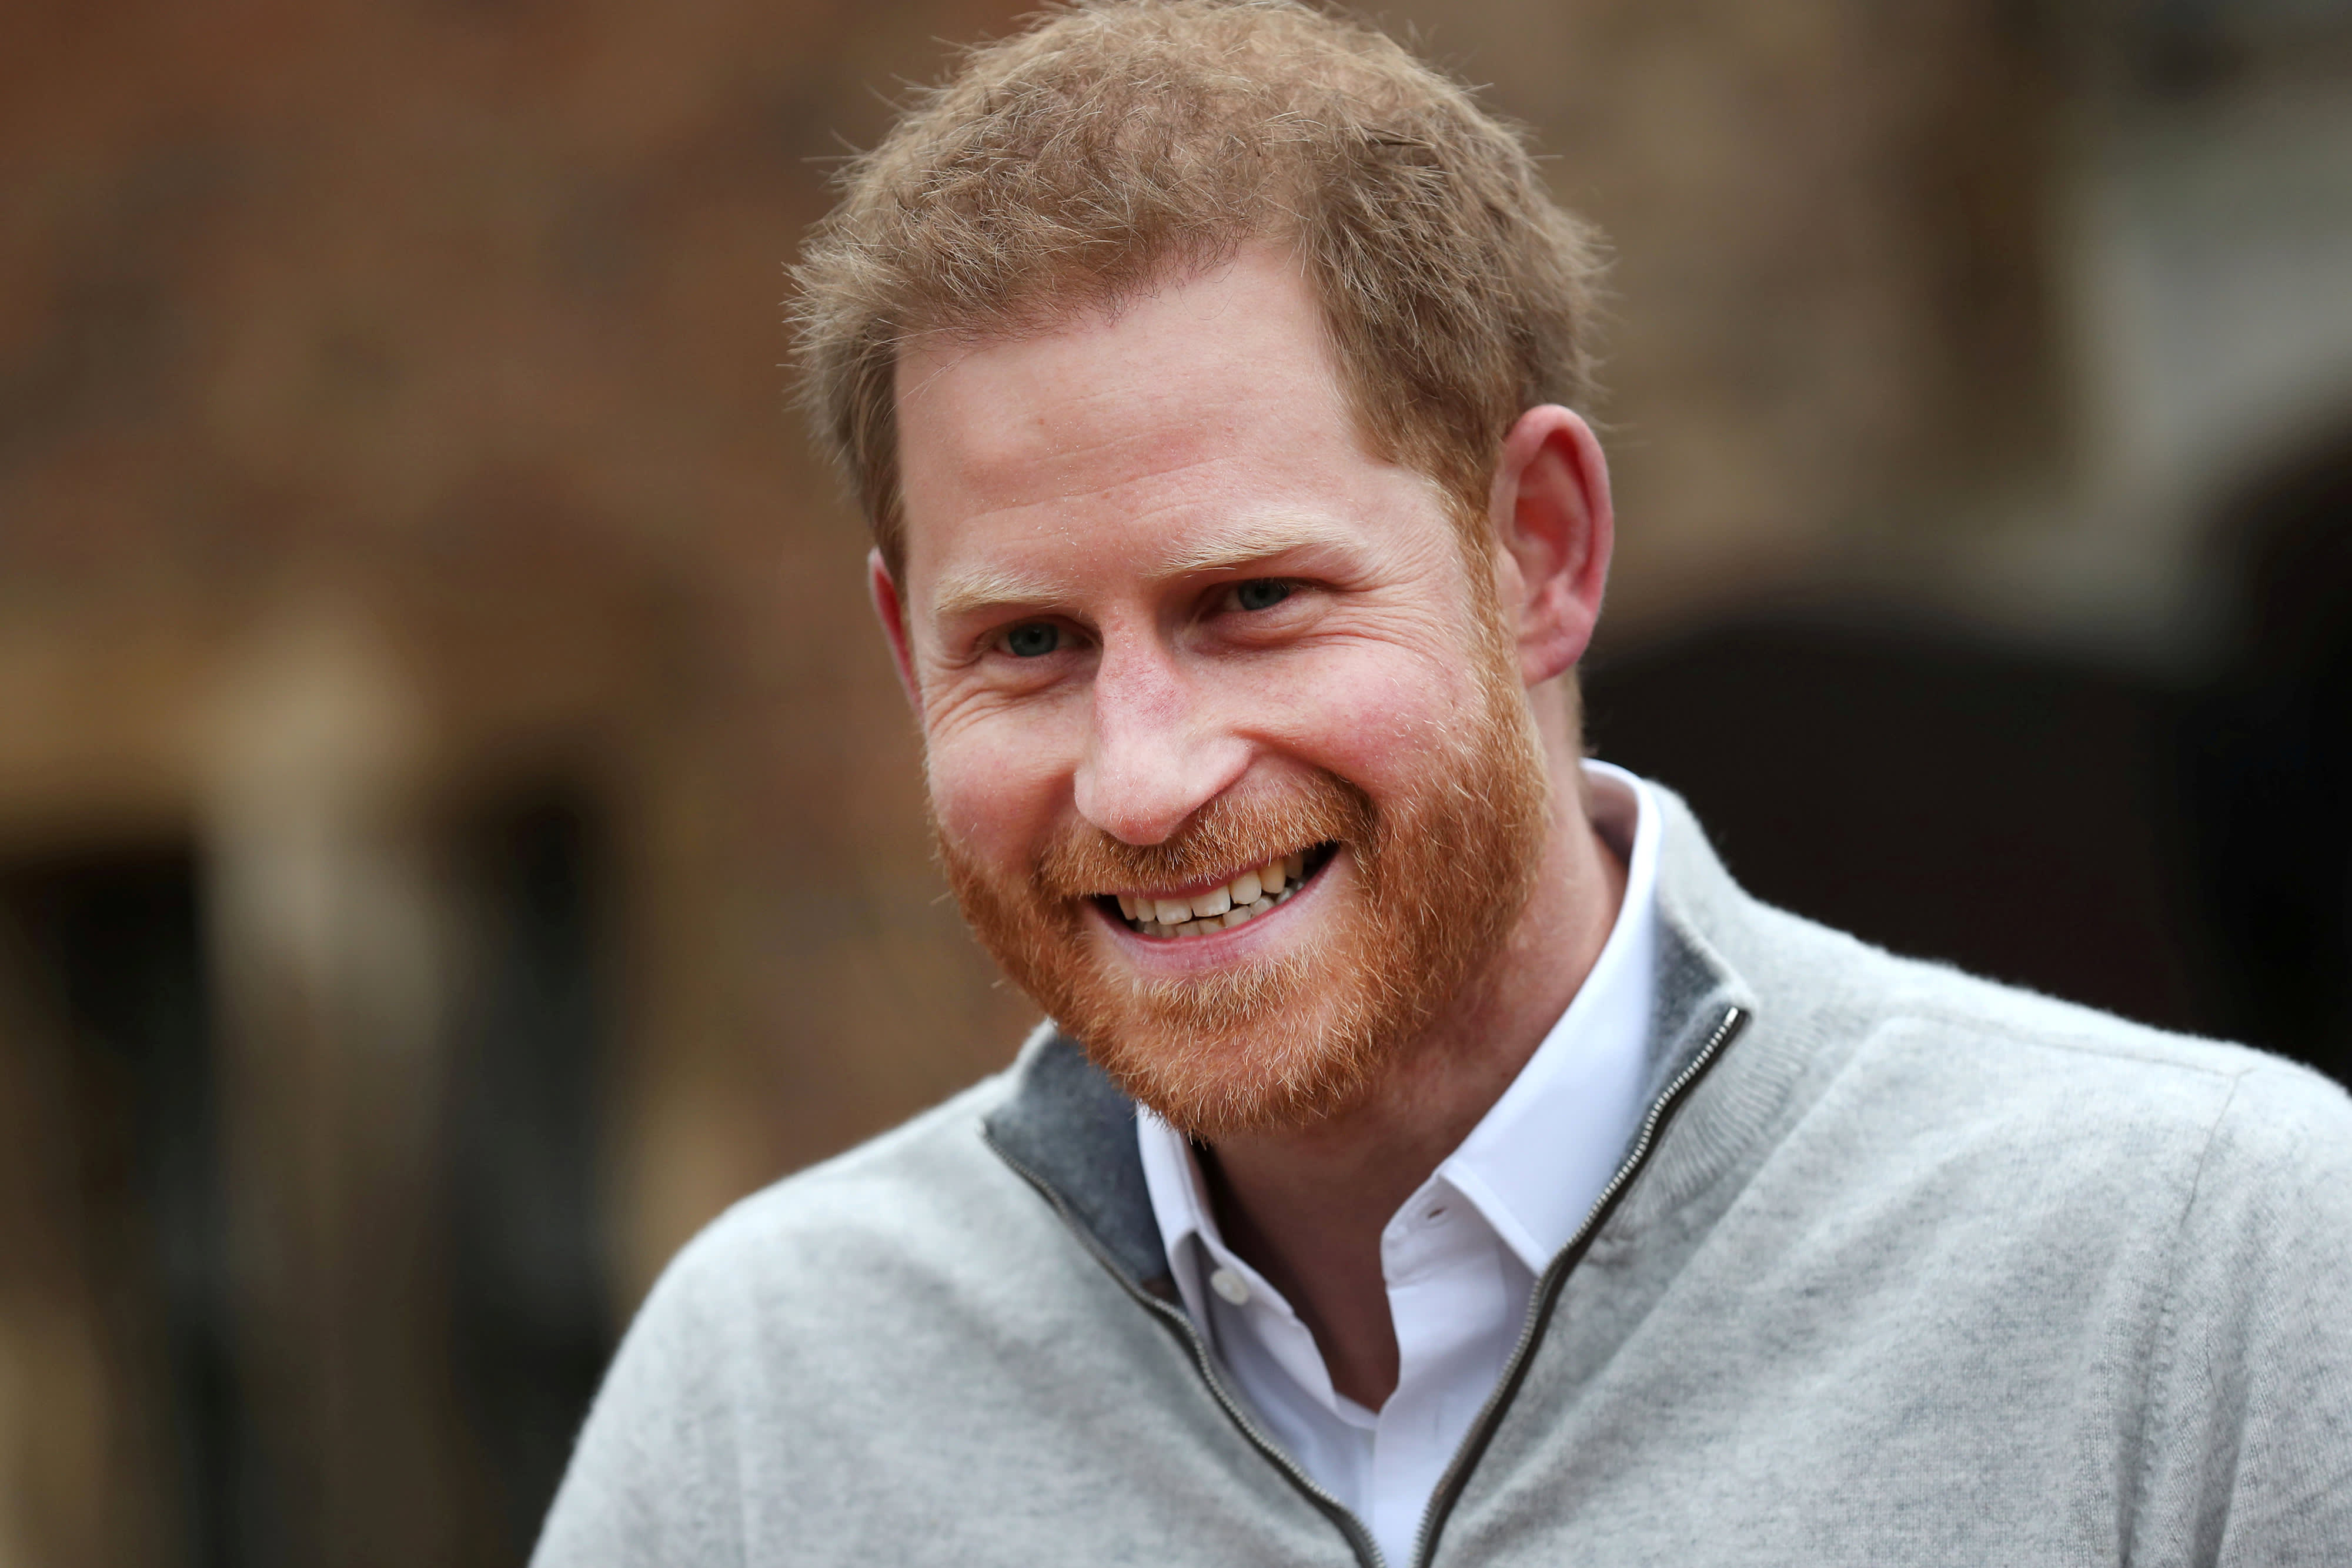 Goldman Sachs is lining up Prince Harry for its online interview series